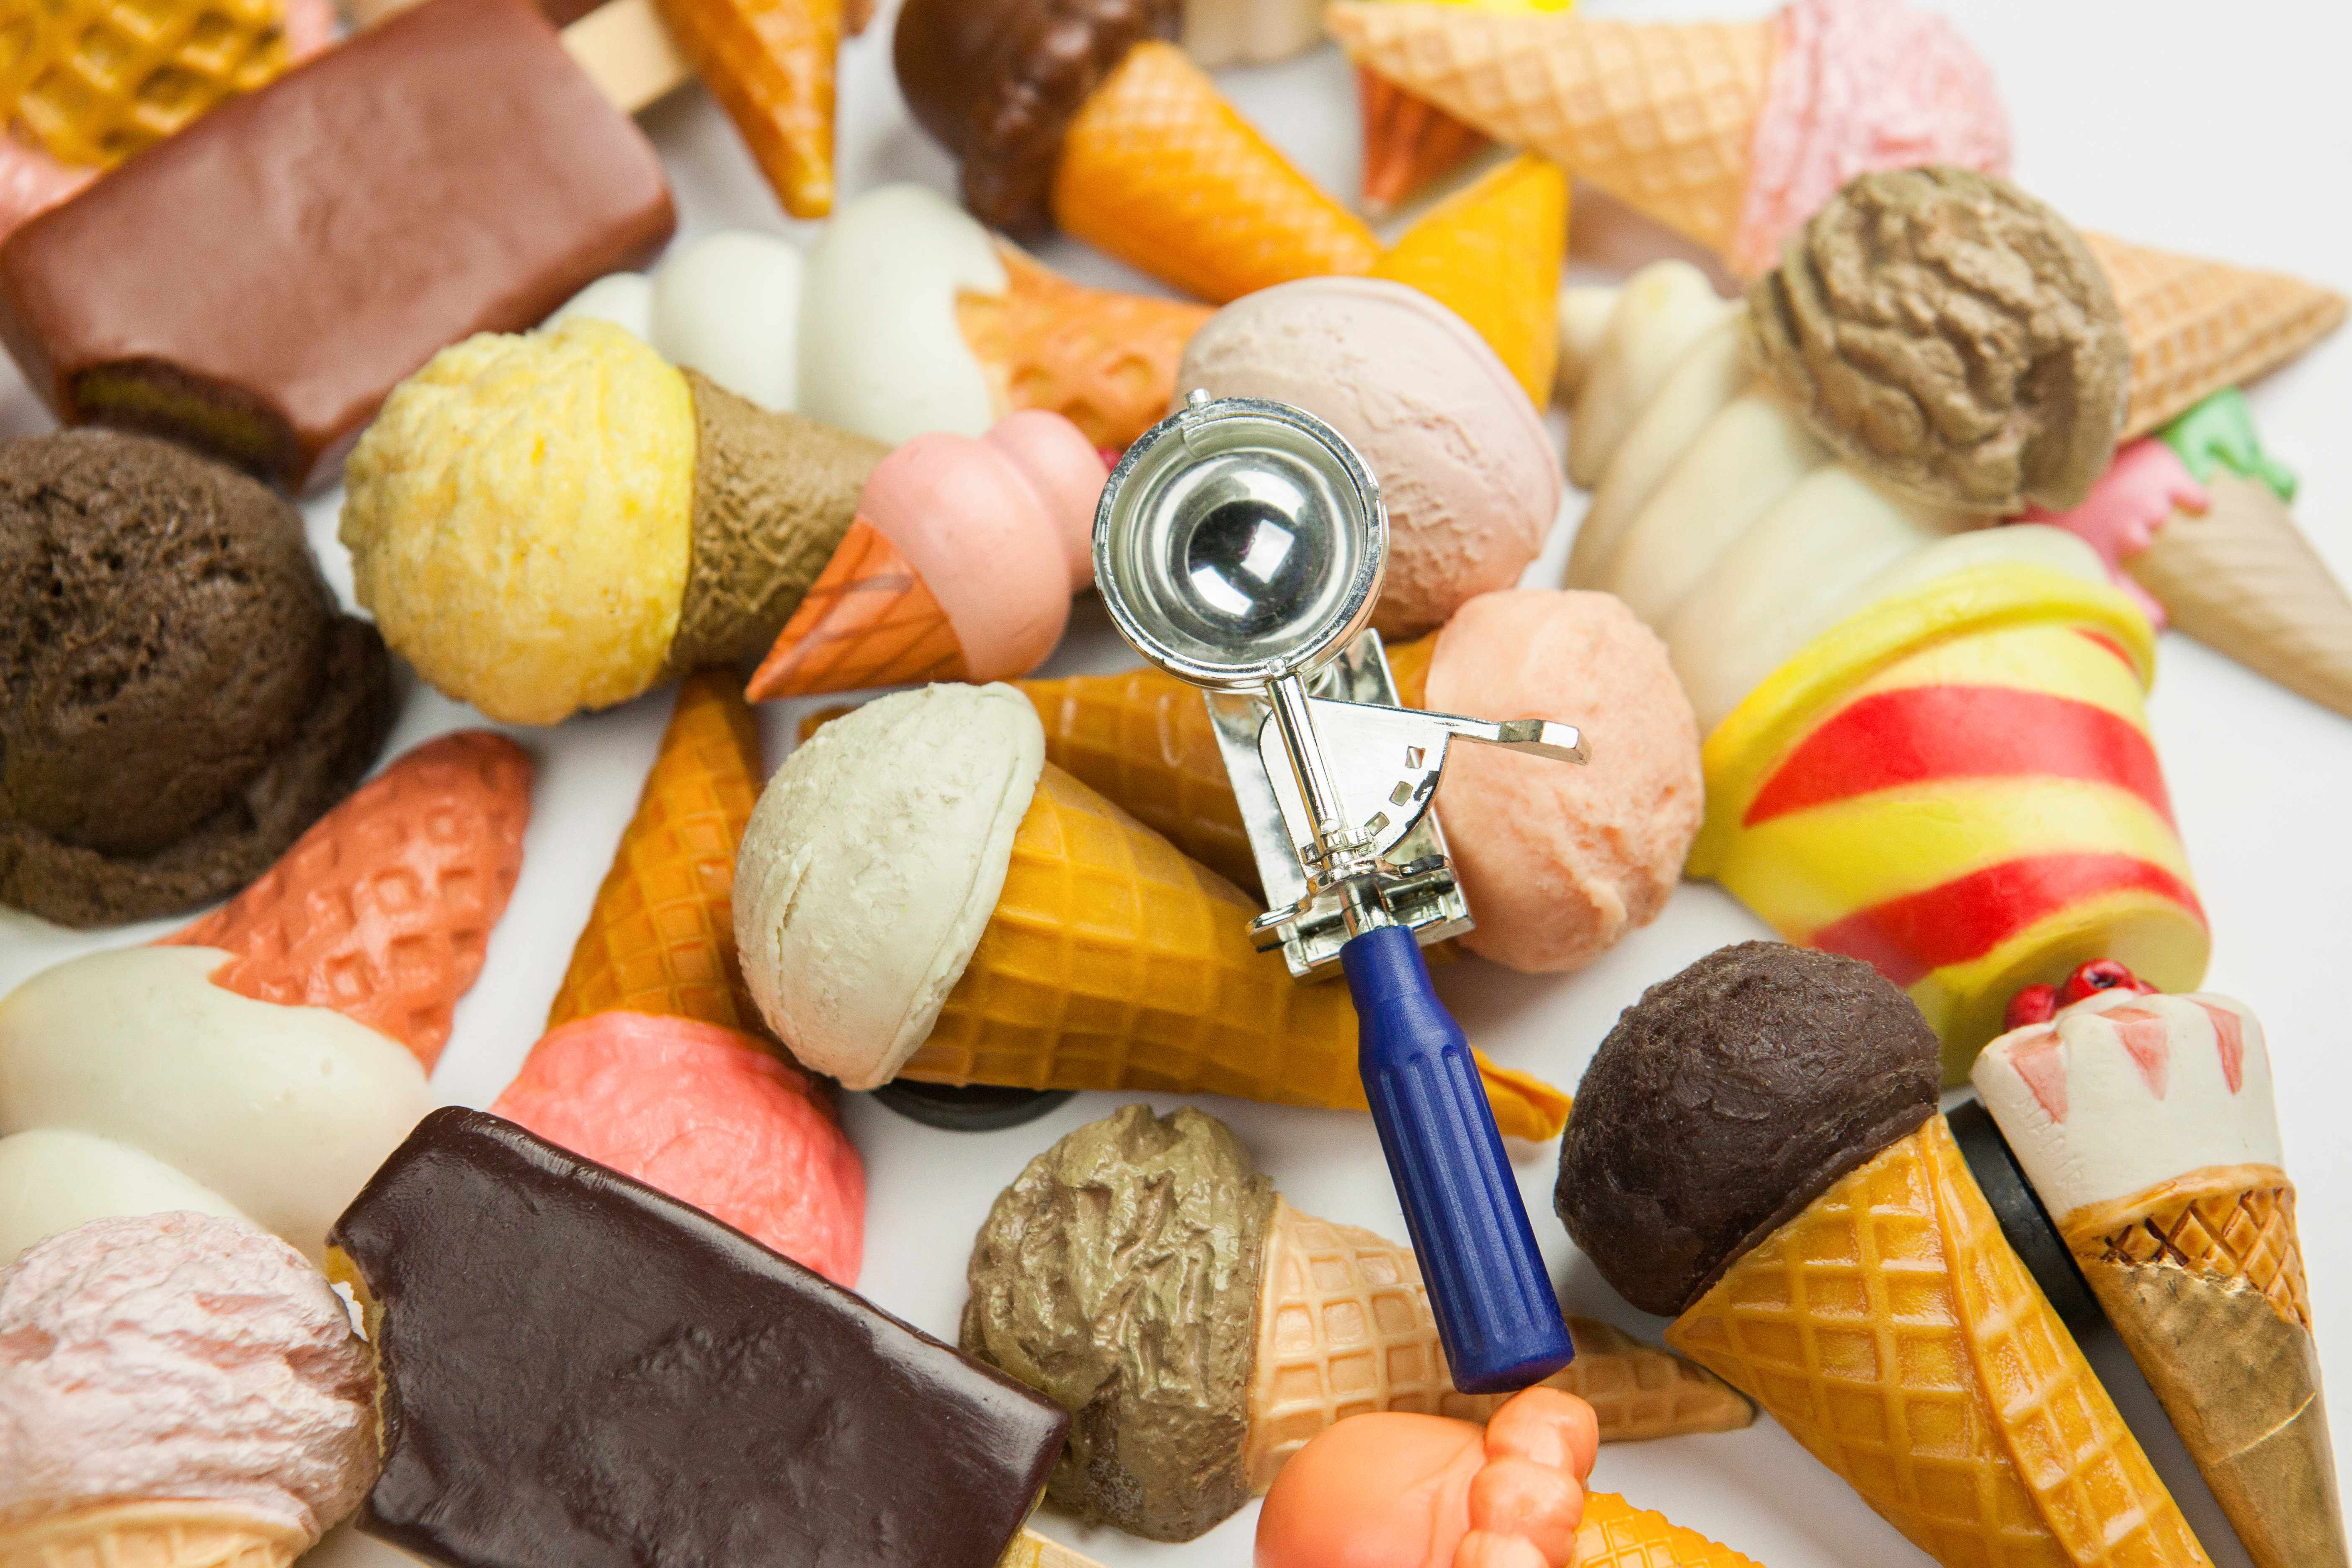 A selection of plastic ice cream cones with an ice cream scoop on top